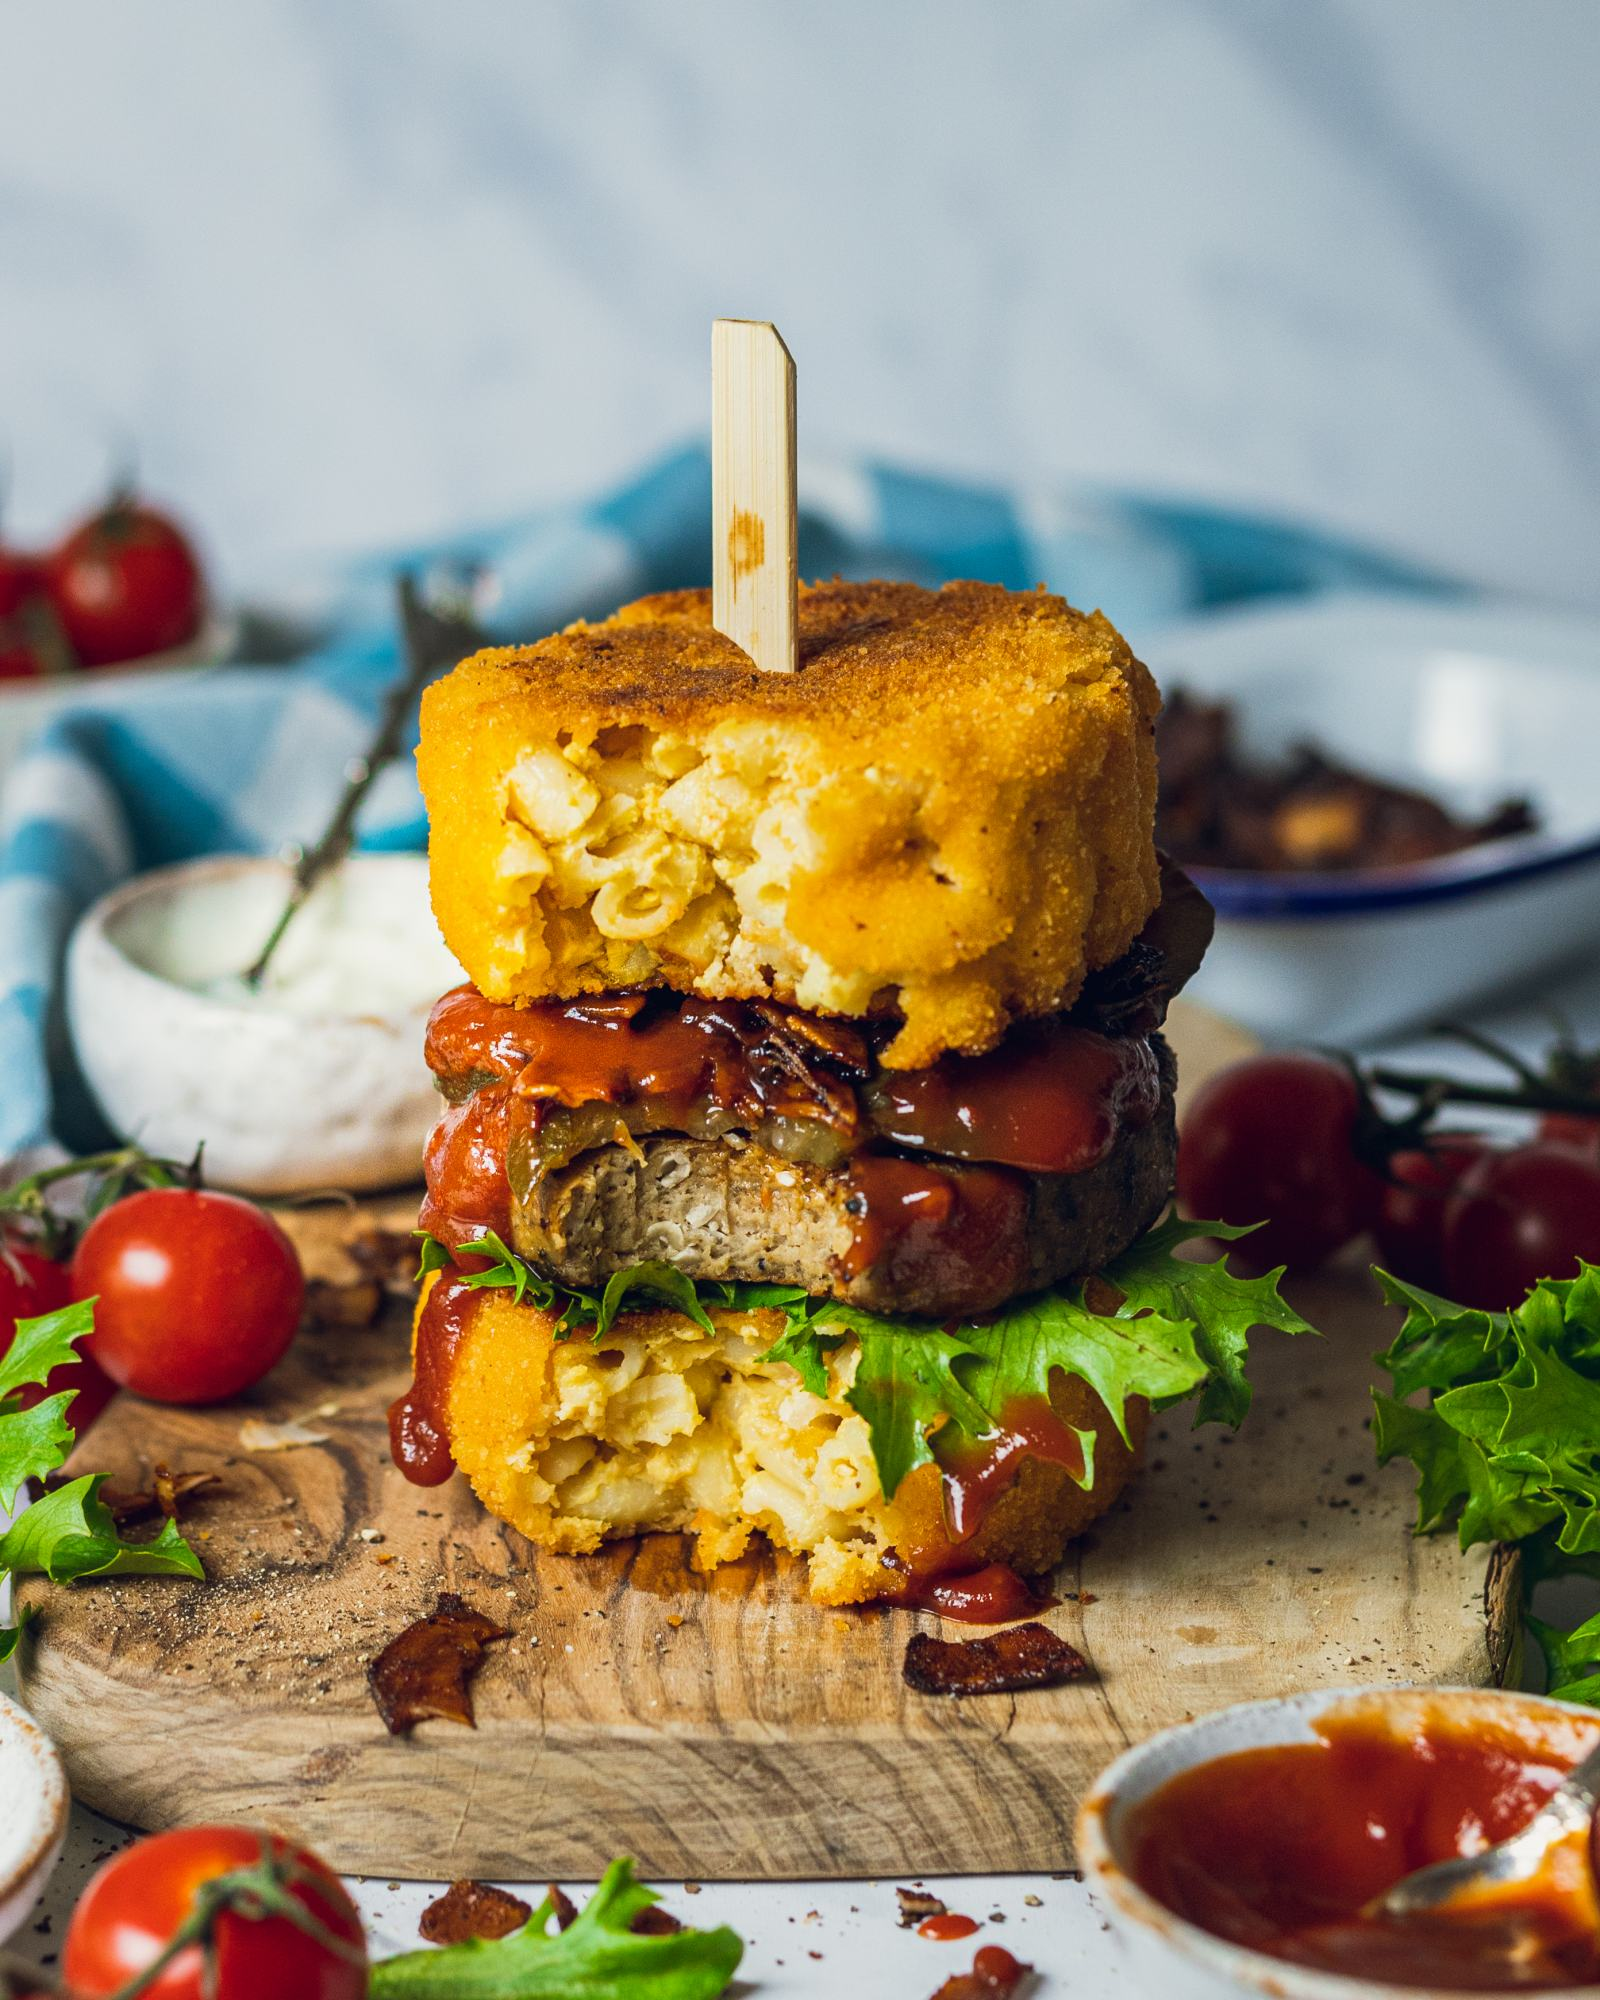 Vegan Mac & Cheese Burger